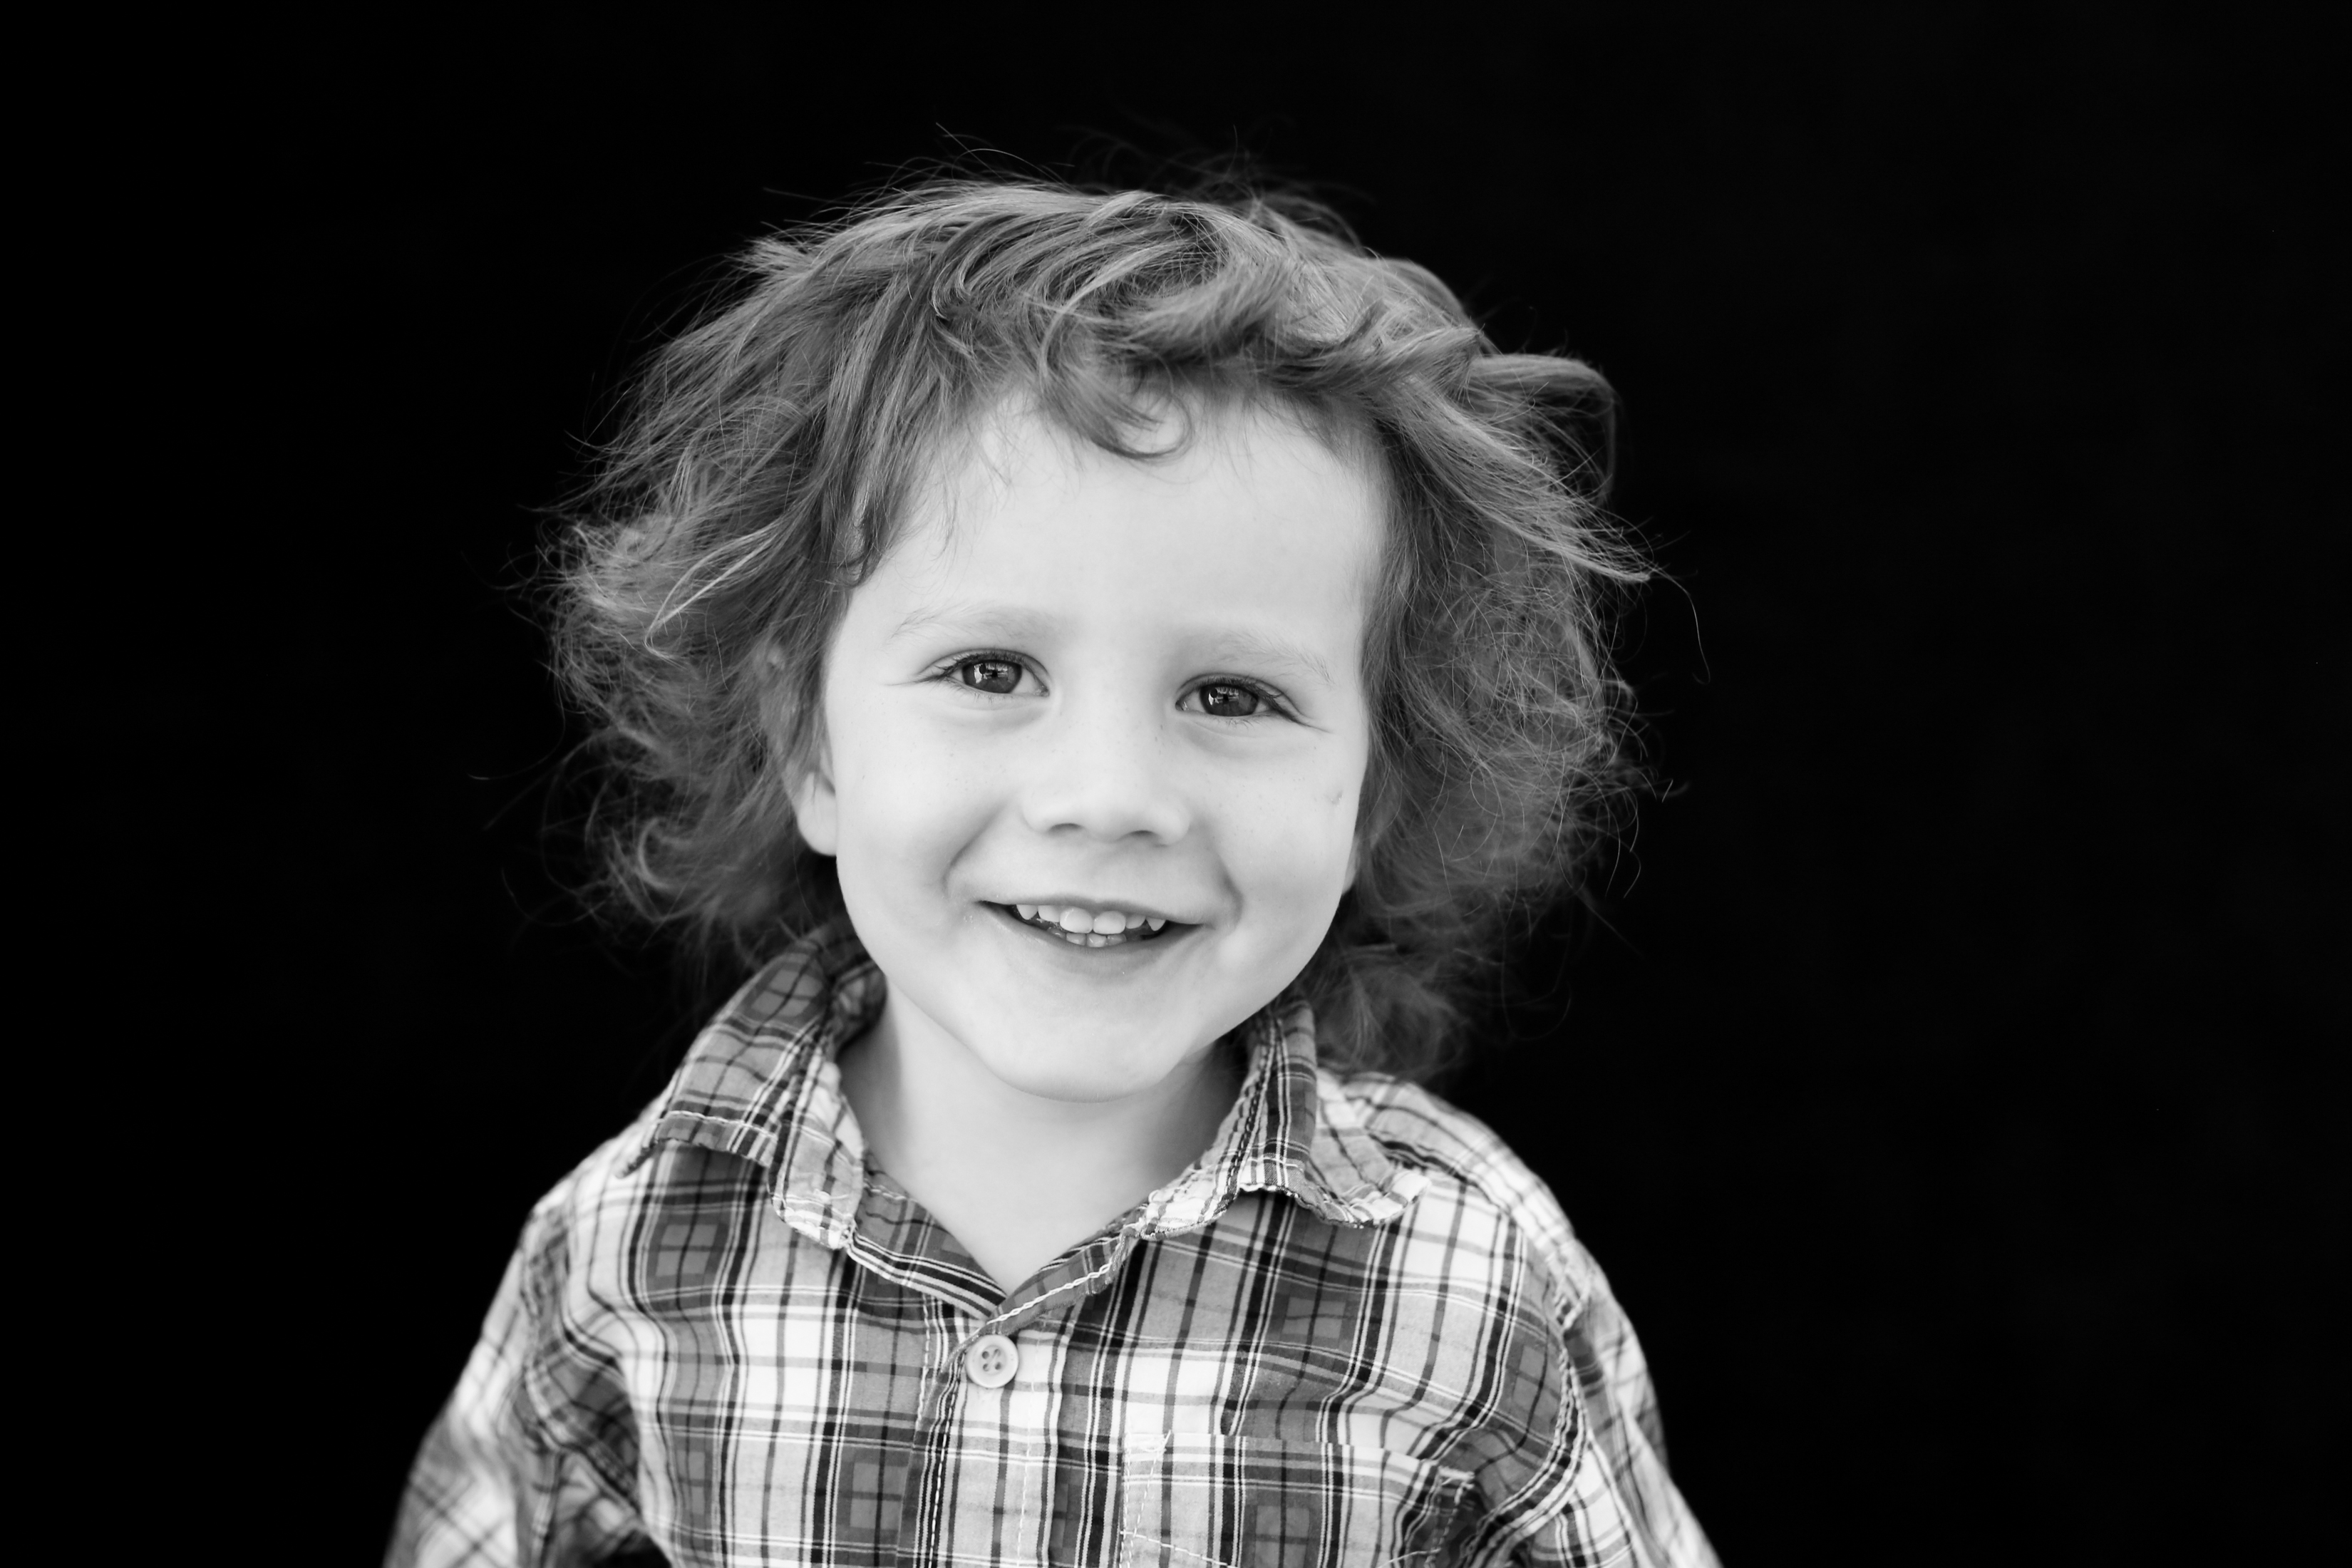 School Portrait Photographer